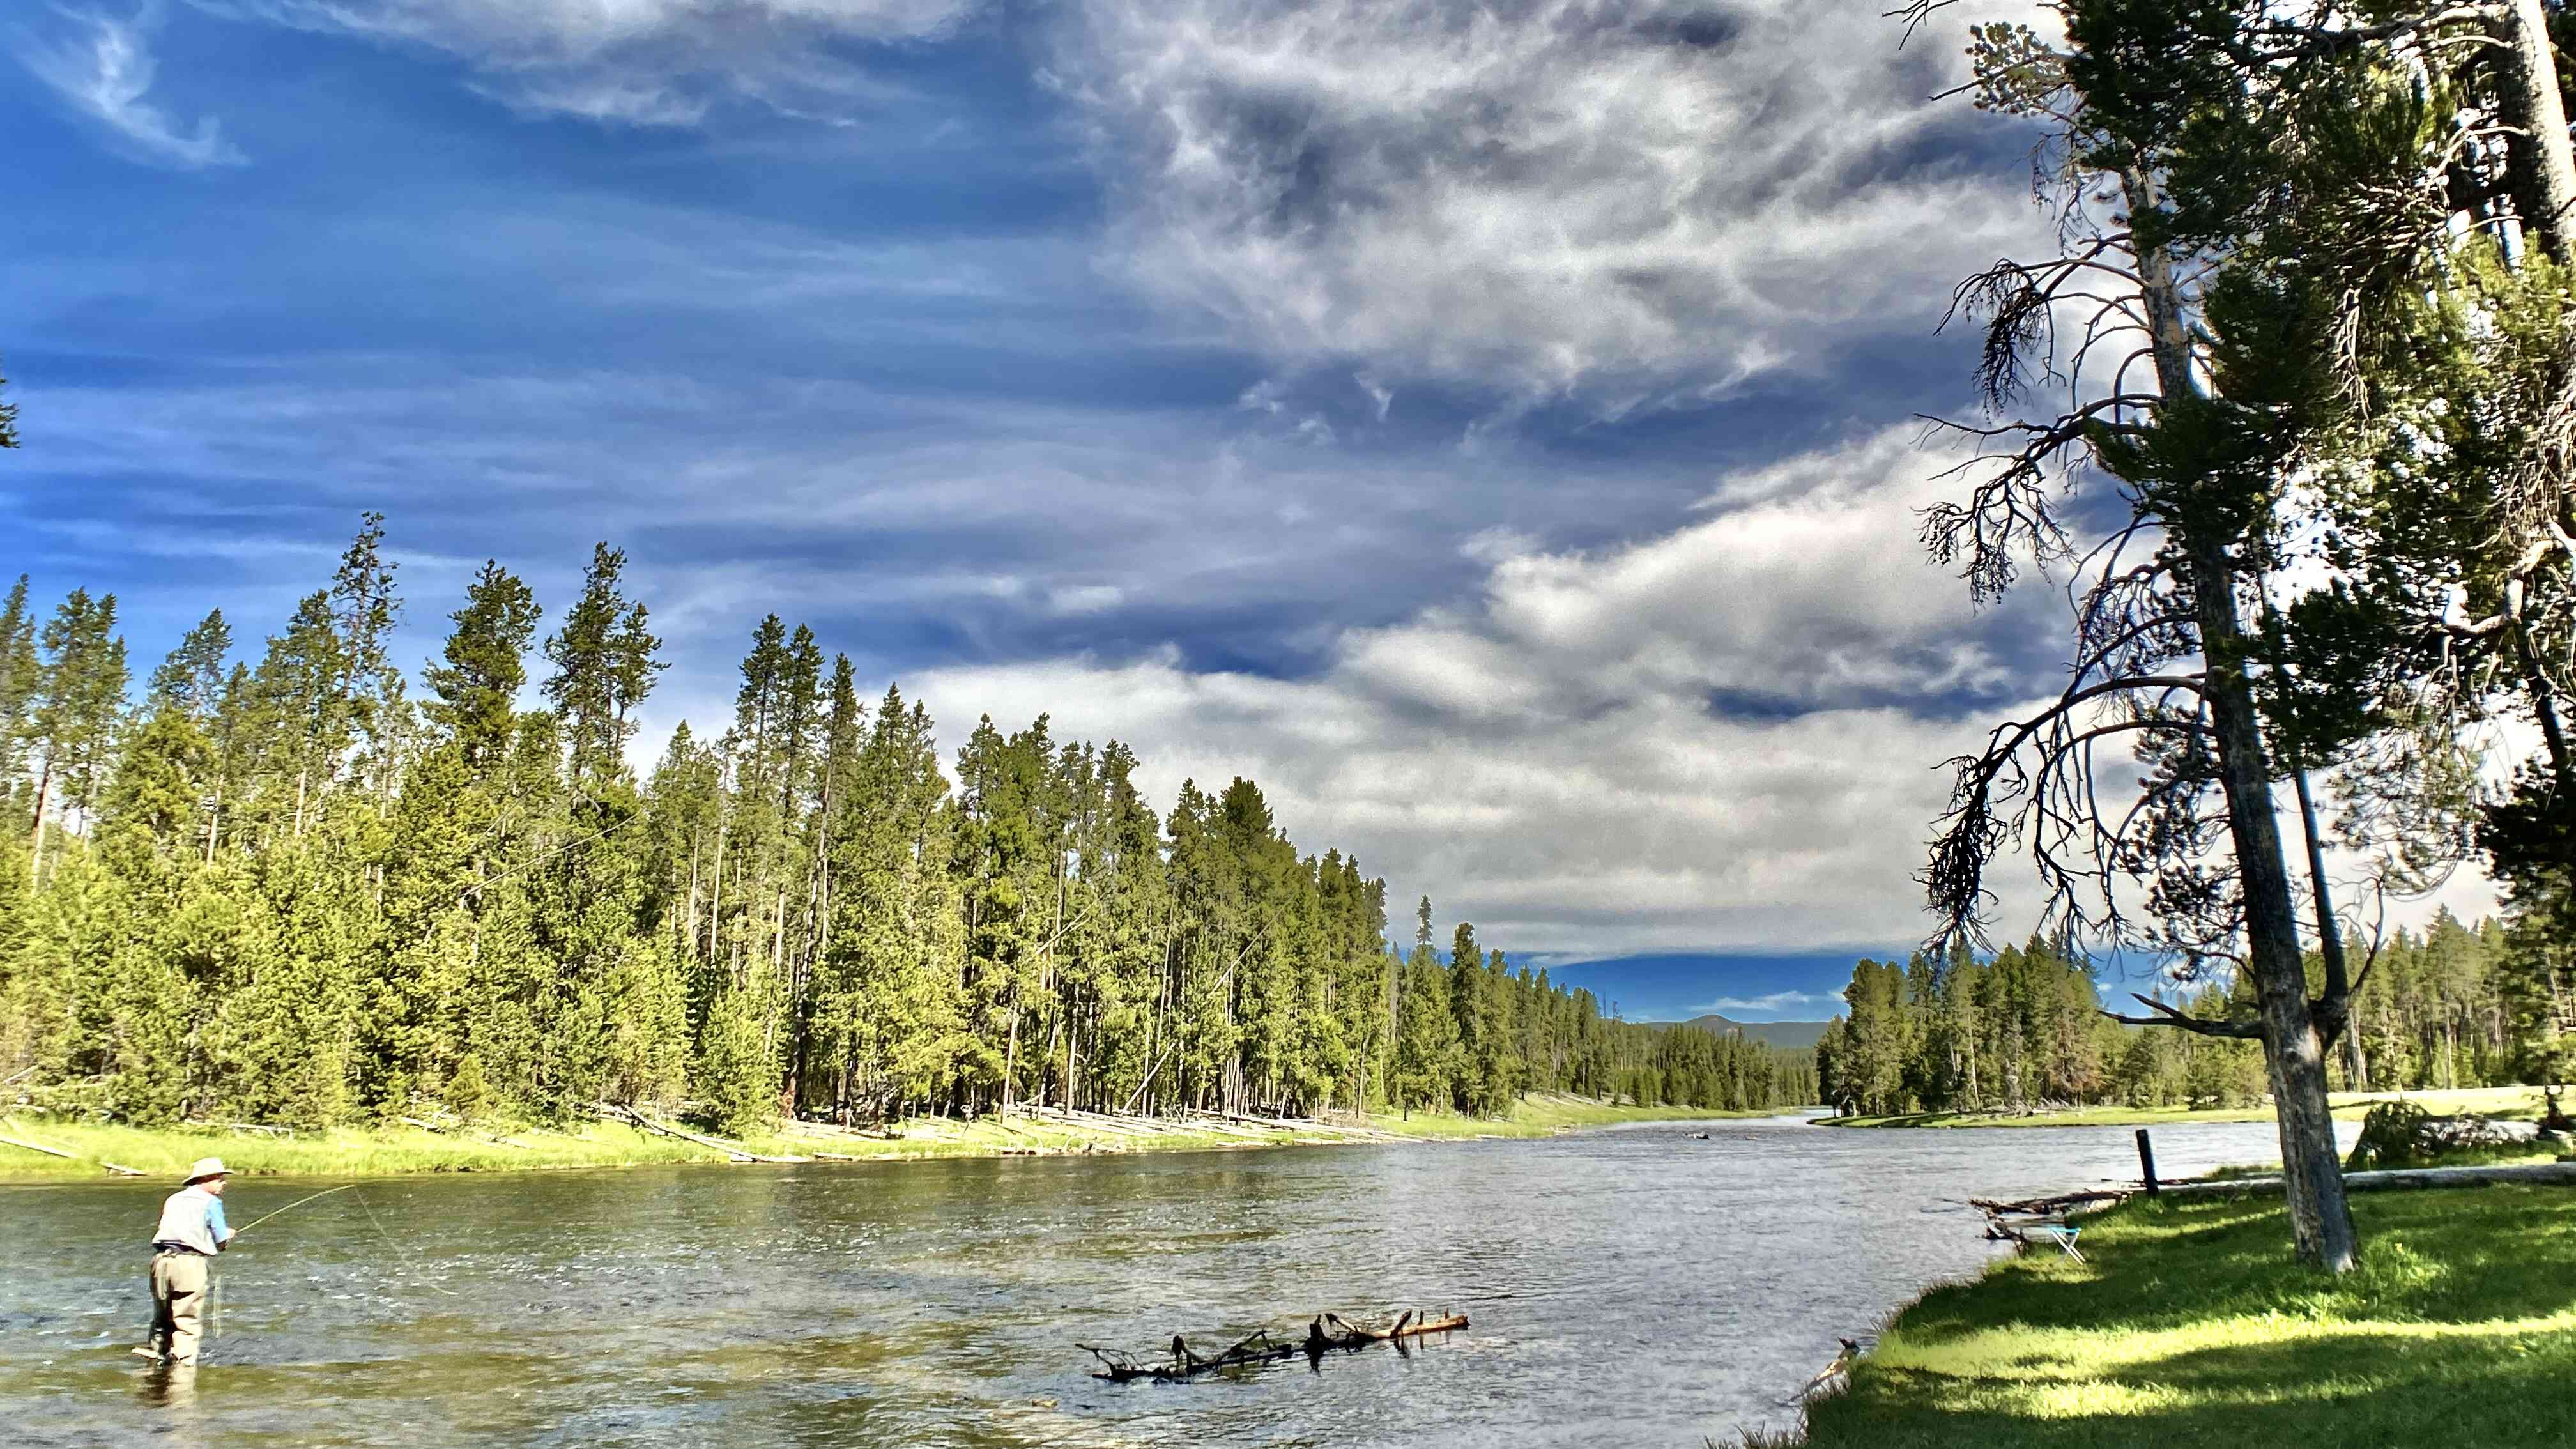 Man fly fishing on the Yellowstone River with tall green trees on both sides of the river on a sunny days under a blue sky with white clouds